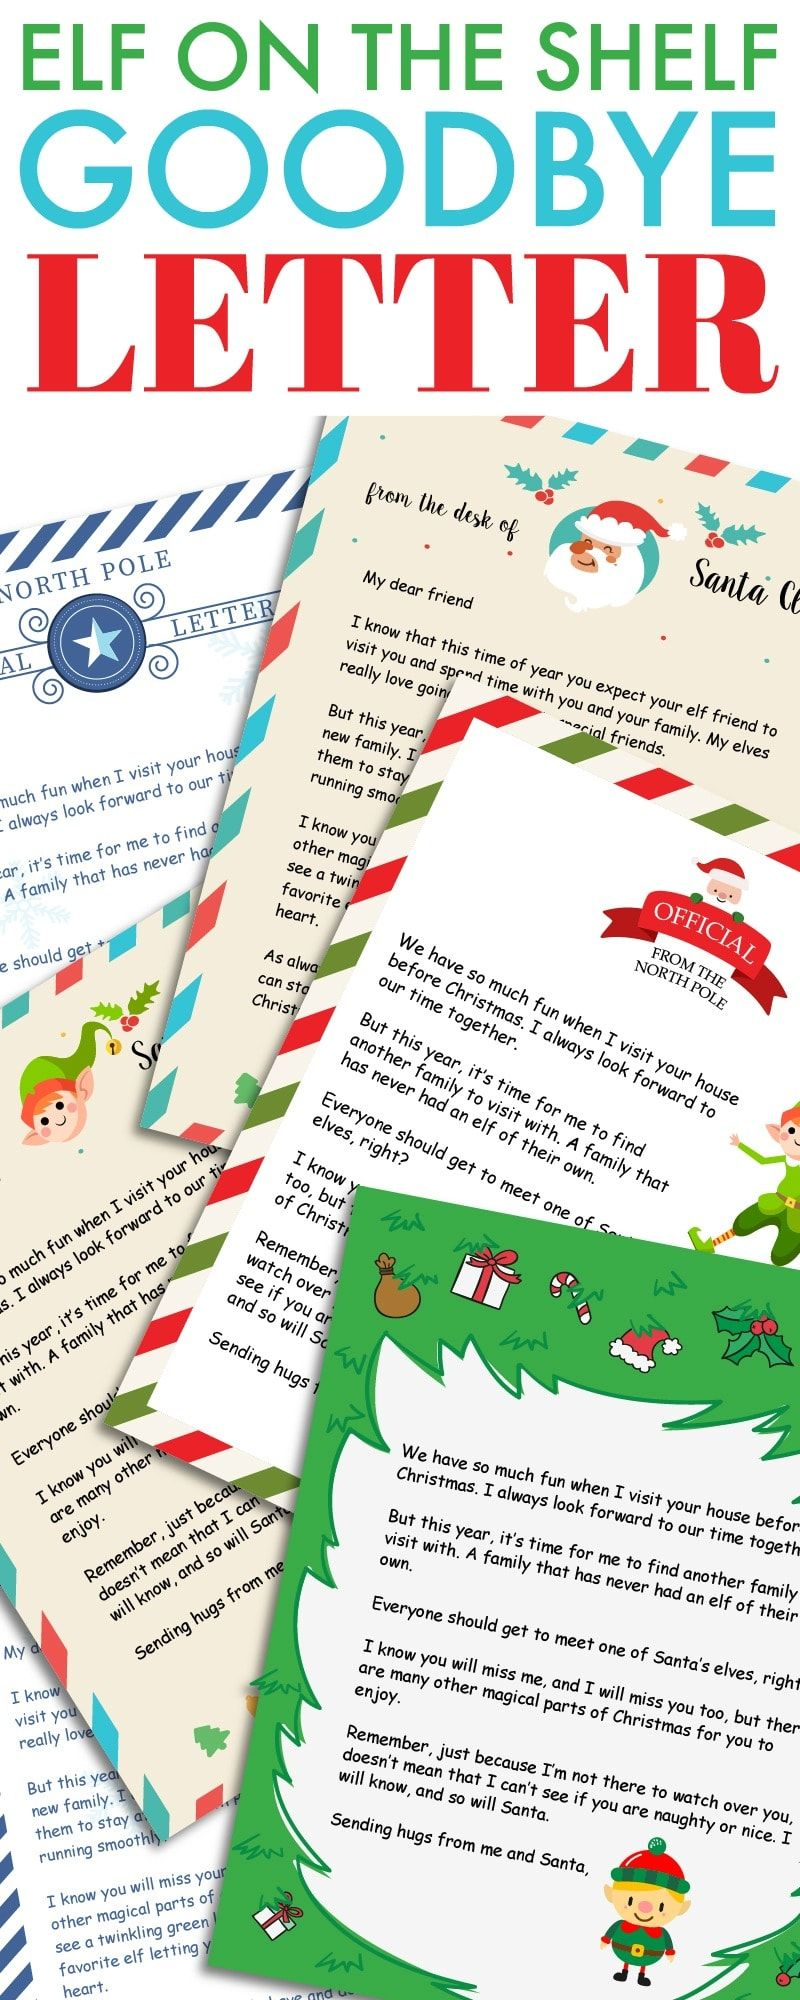 Elf on the Shelf Goodbye Letter Free Printable Goodbye